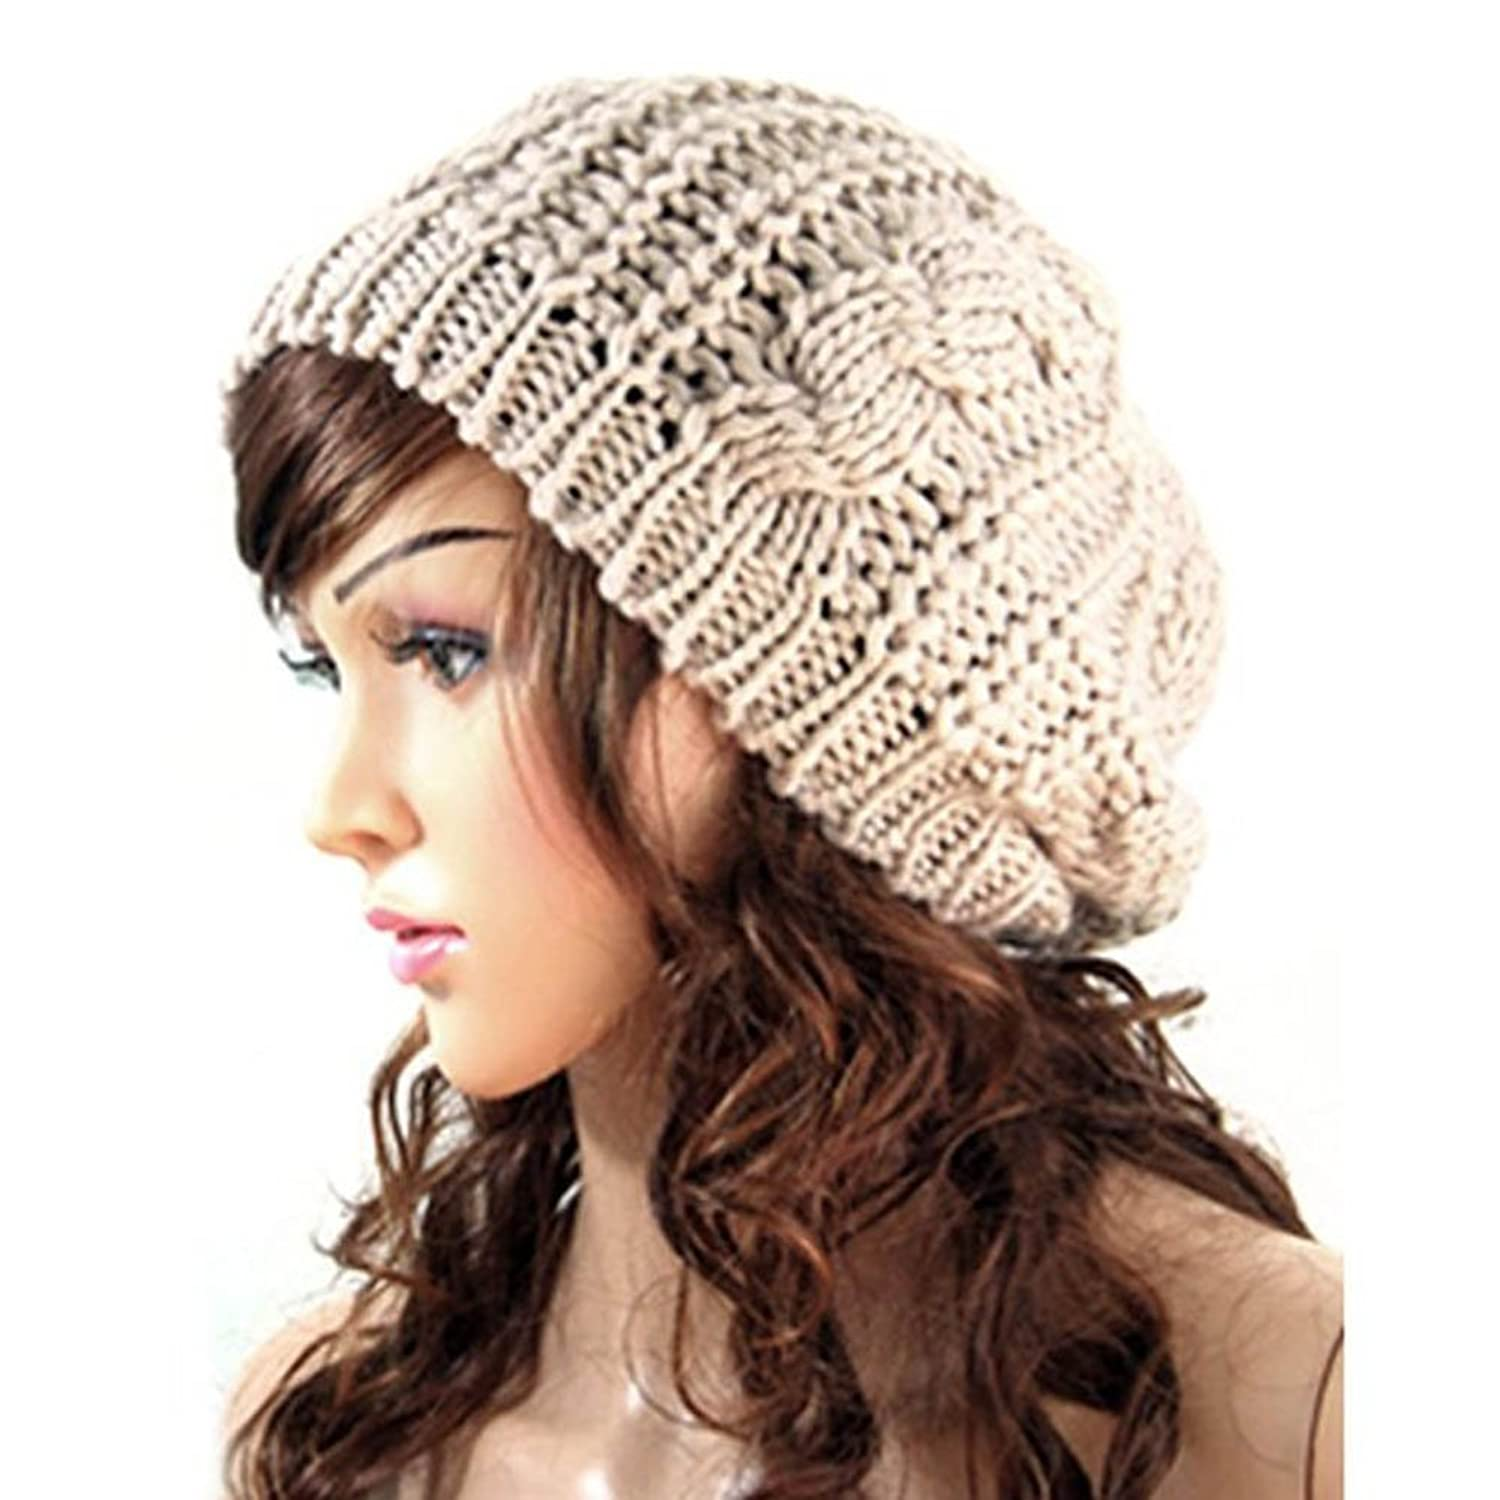 207942c35d844 YJWAN Women Ladies Baggy Beret Chunky Knit Knitted Braided Beanie Hat Ski  Cap at Amazon Women s Clothing store